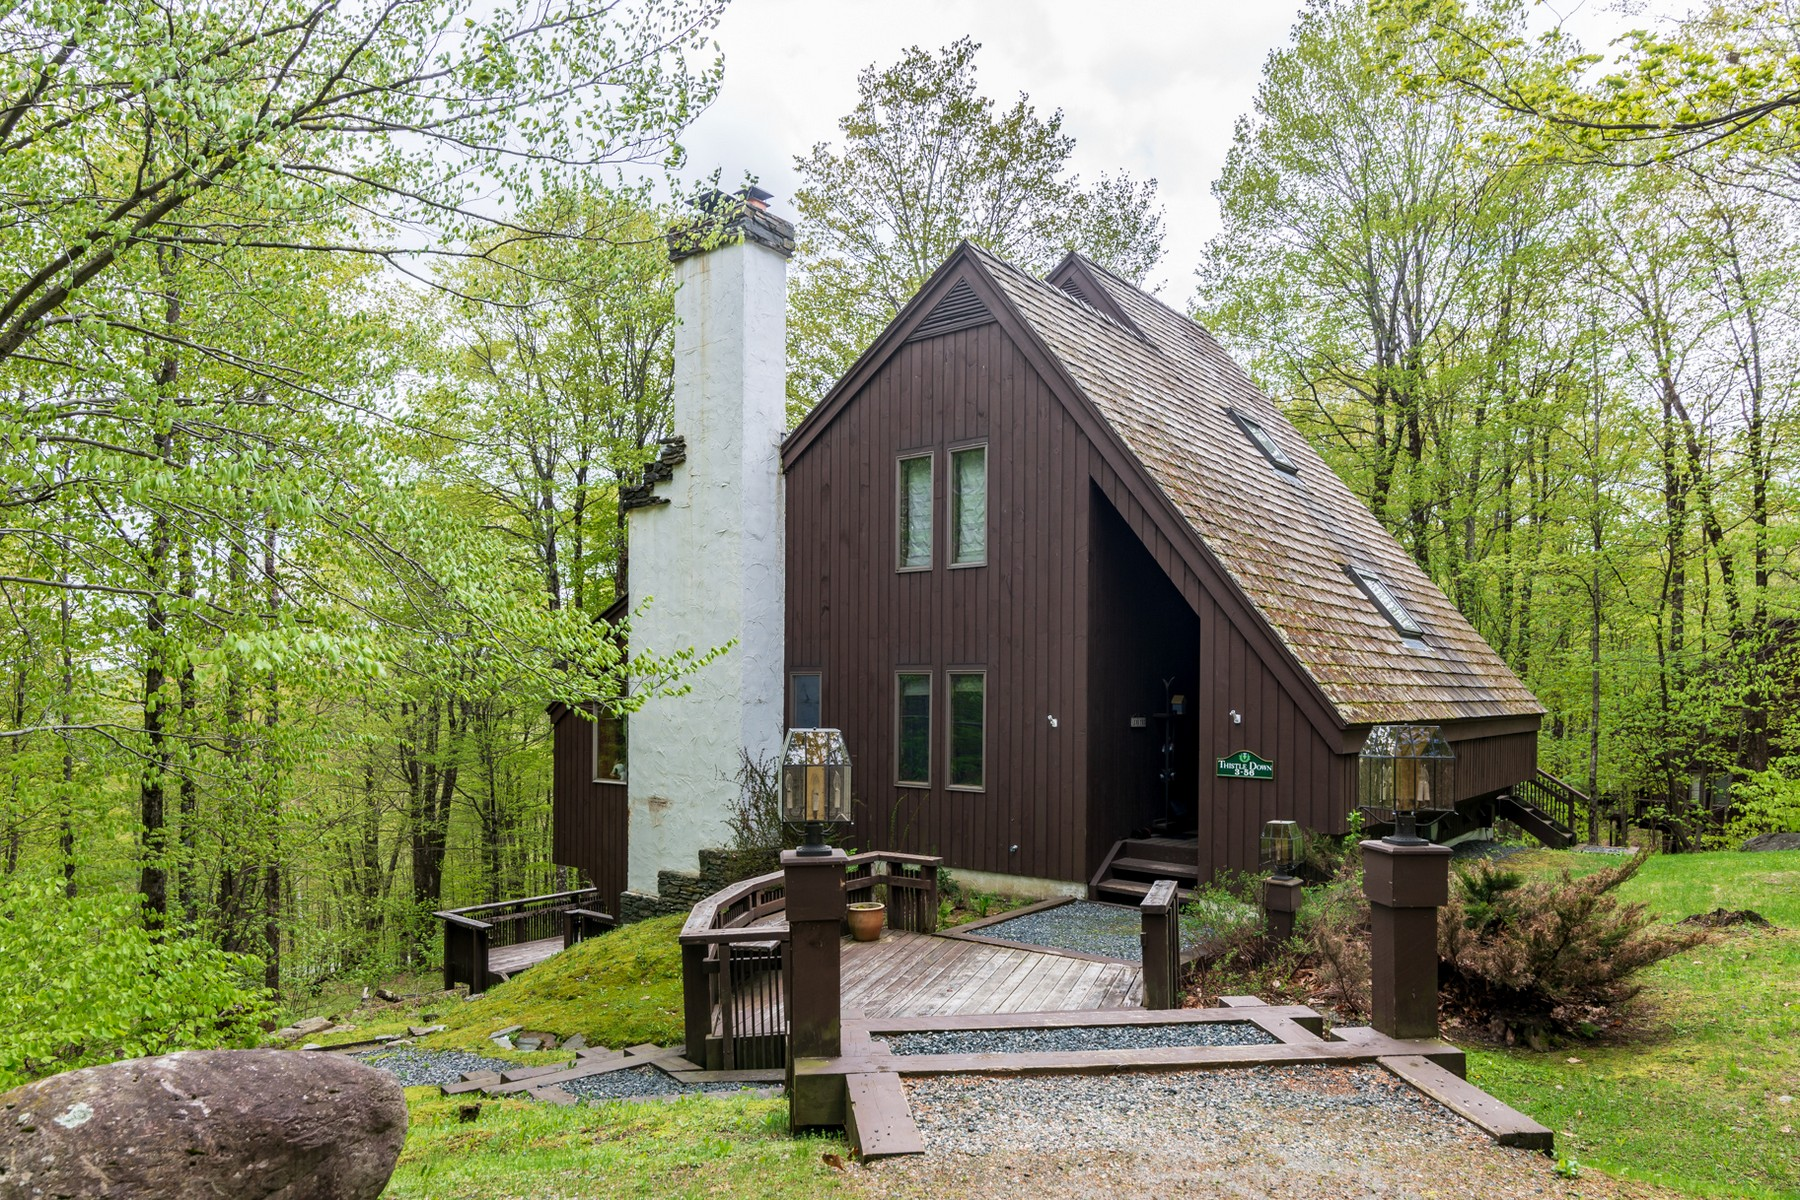 Single Family Homes for Sale at Snowy Owl Contemporary 133 Snowy Owl Lane Plymouth, Vermont 05056 United States